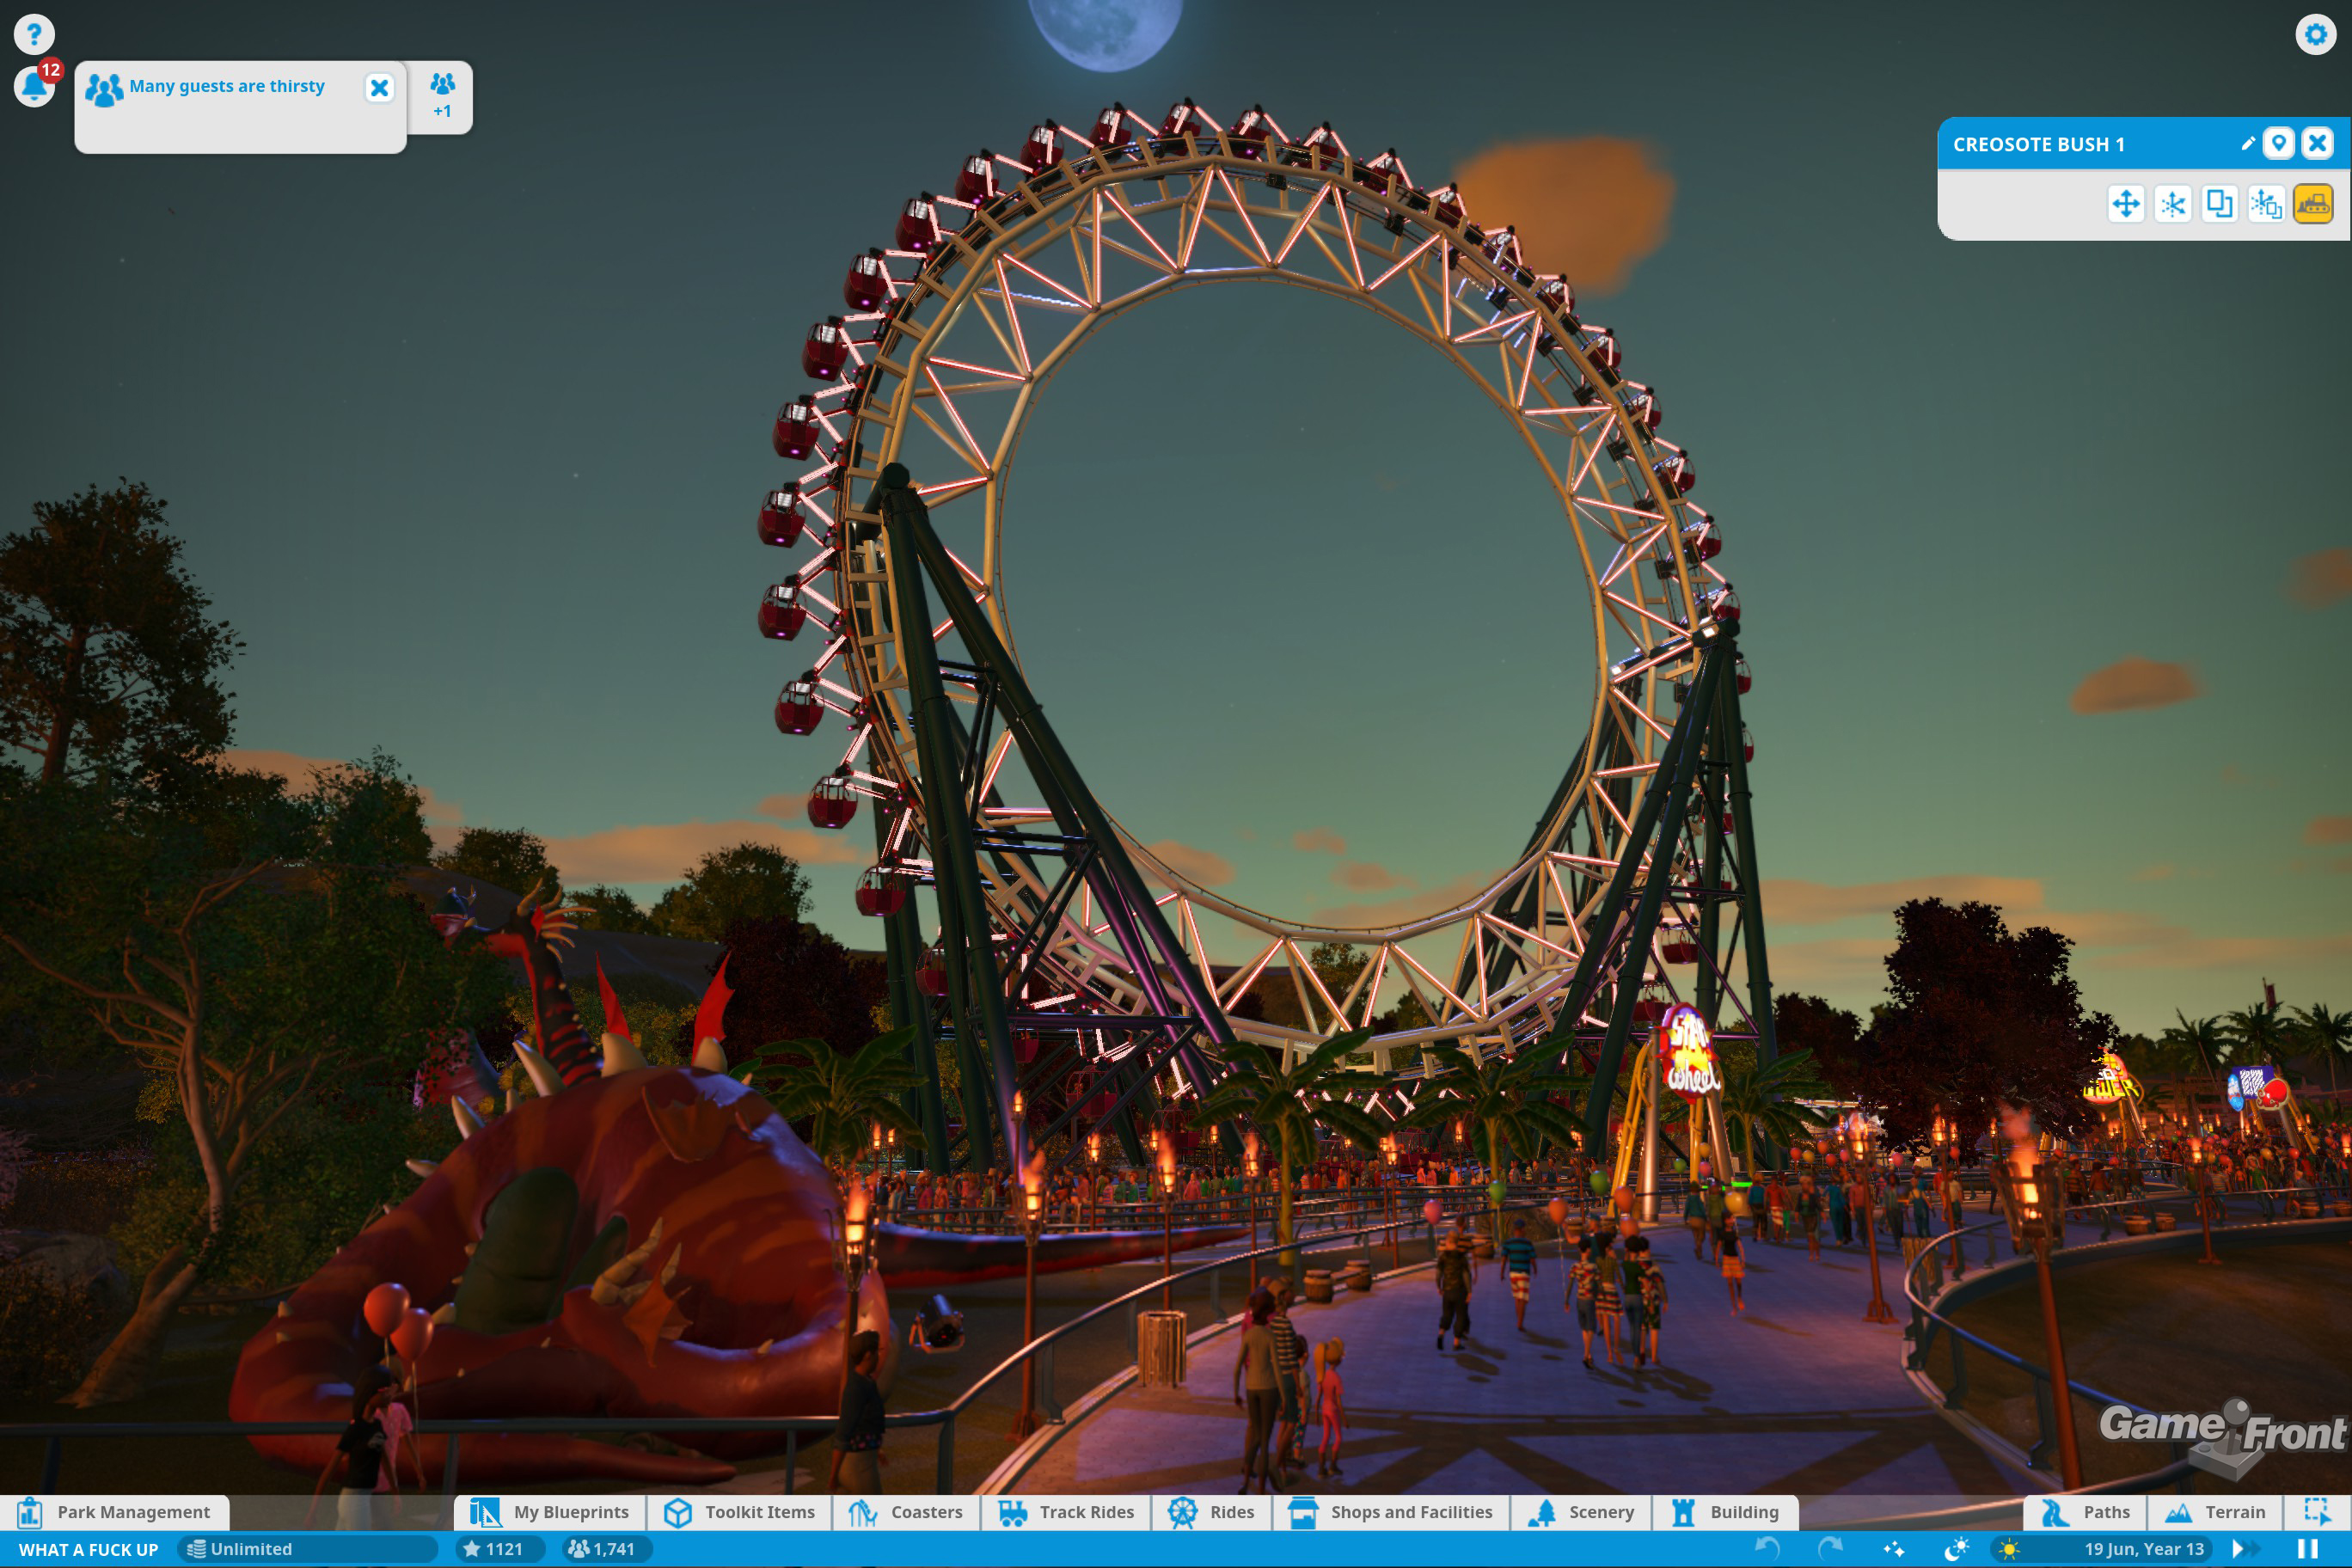 20 Years of RollerCoaster Tycoon: A Look Back At The Legendary